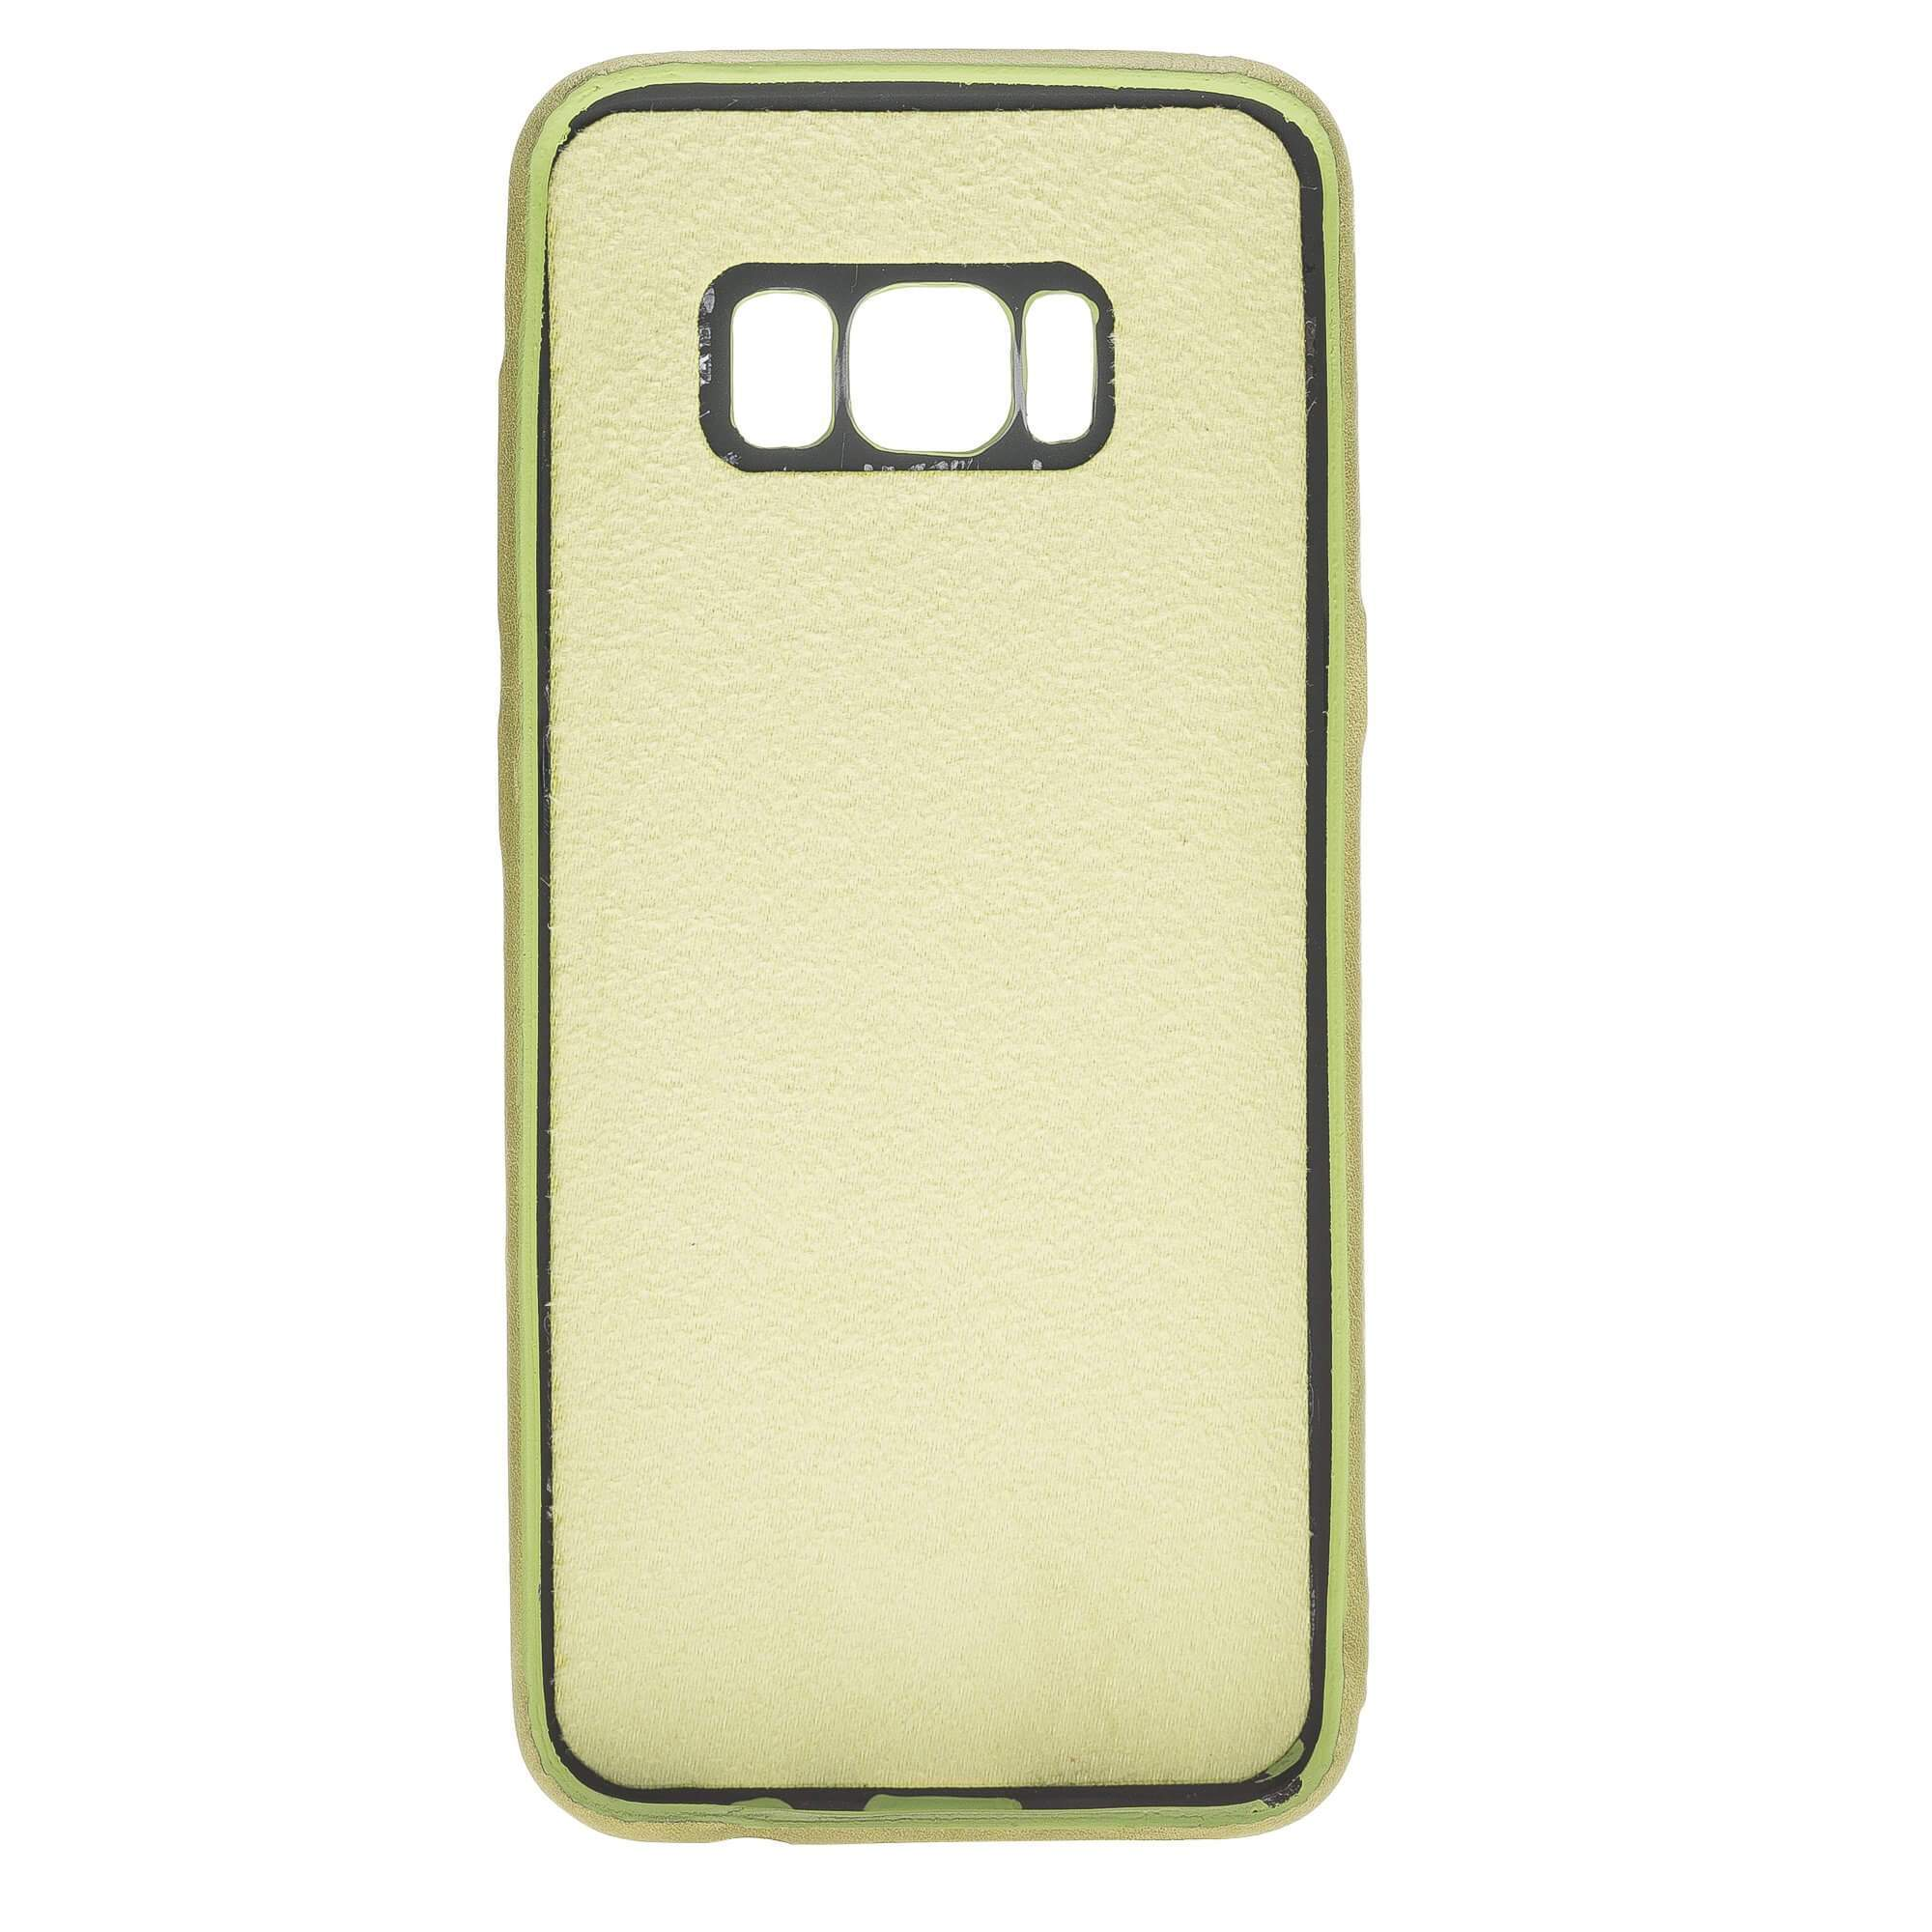 Phone Case Leather Ultra Cover with Credit Card Slots for Samsung S8 - Crazy Green Bouletta Shop